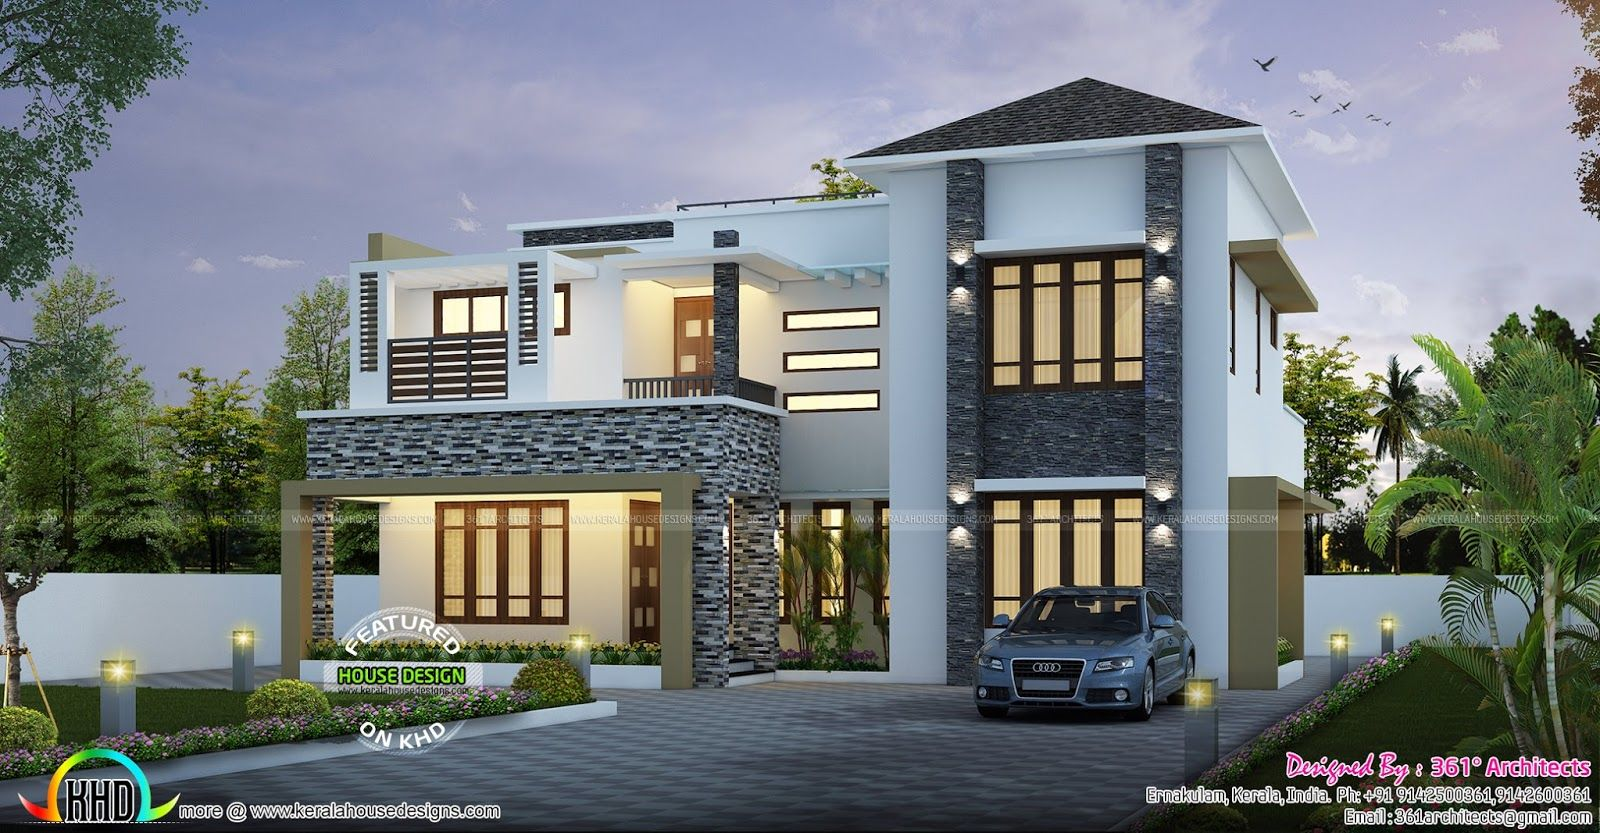 Sq ft modern contemporary home kerala home design floor plans sq ft modern contemporary home design kerala home design floor